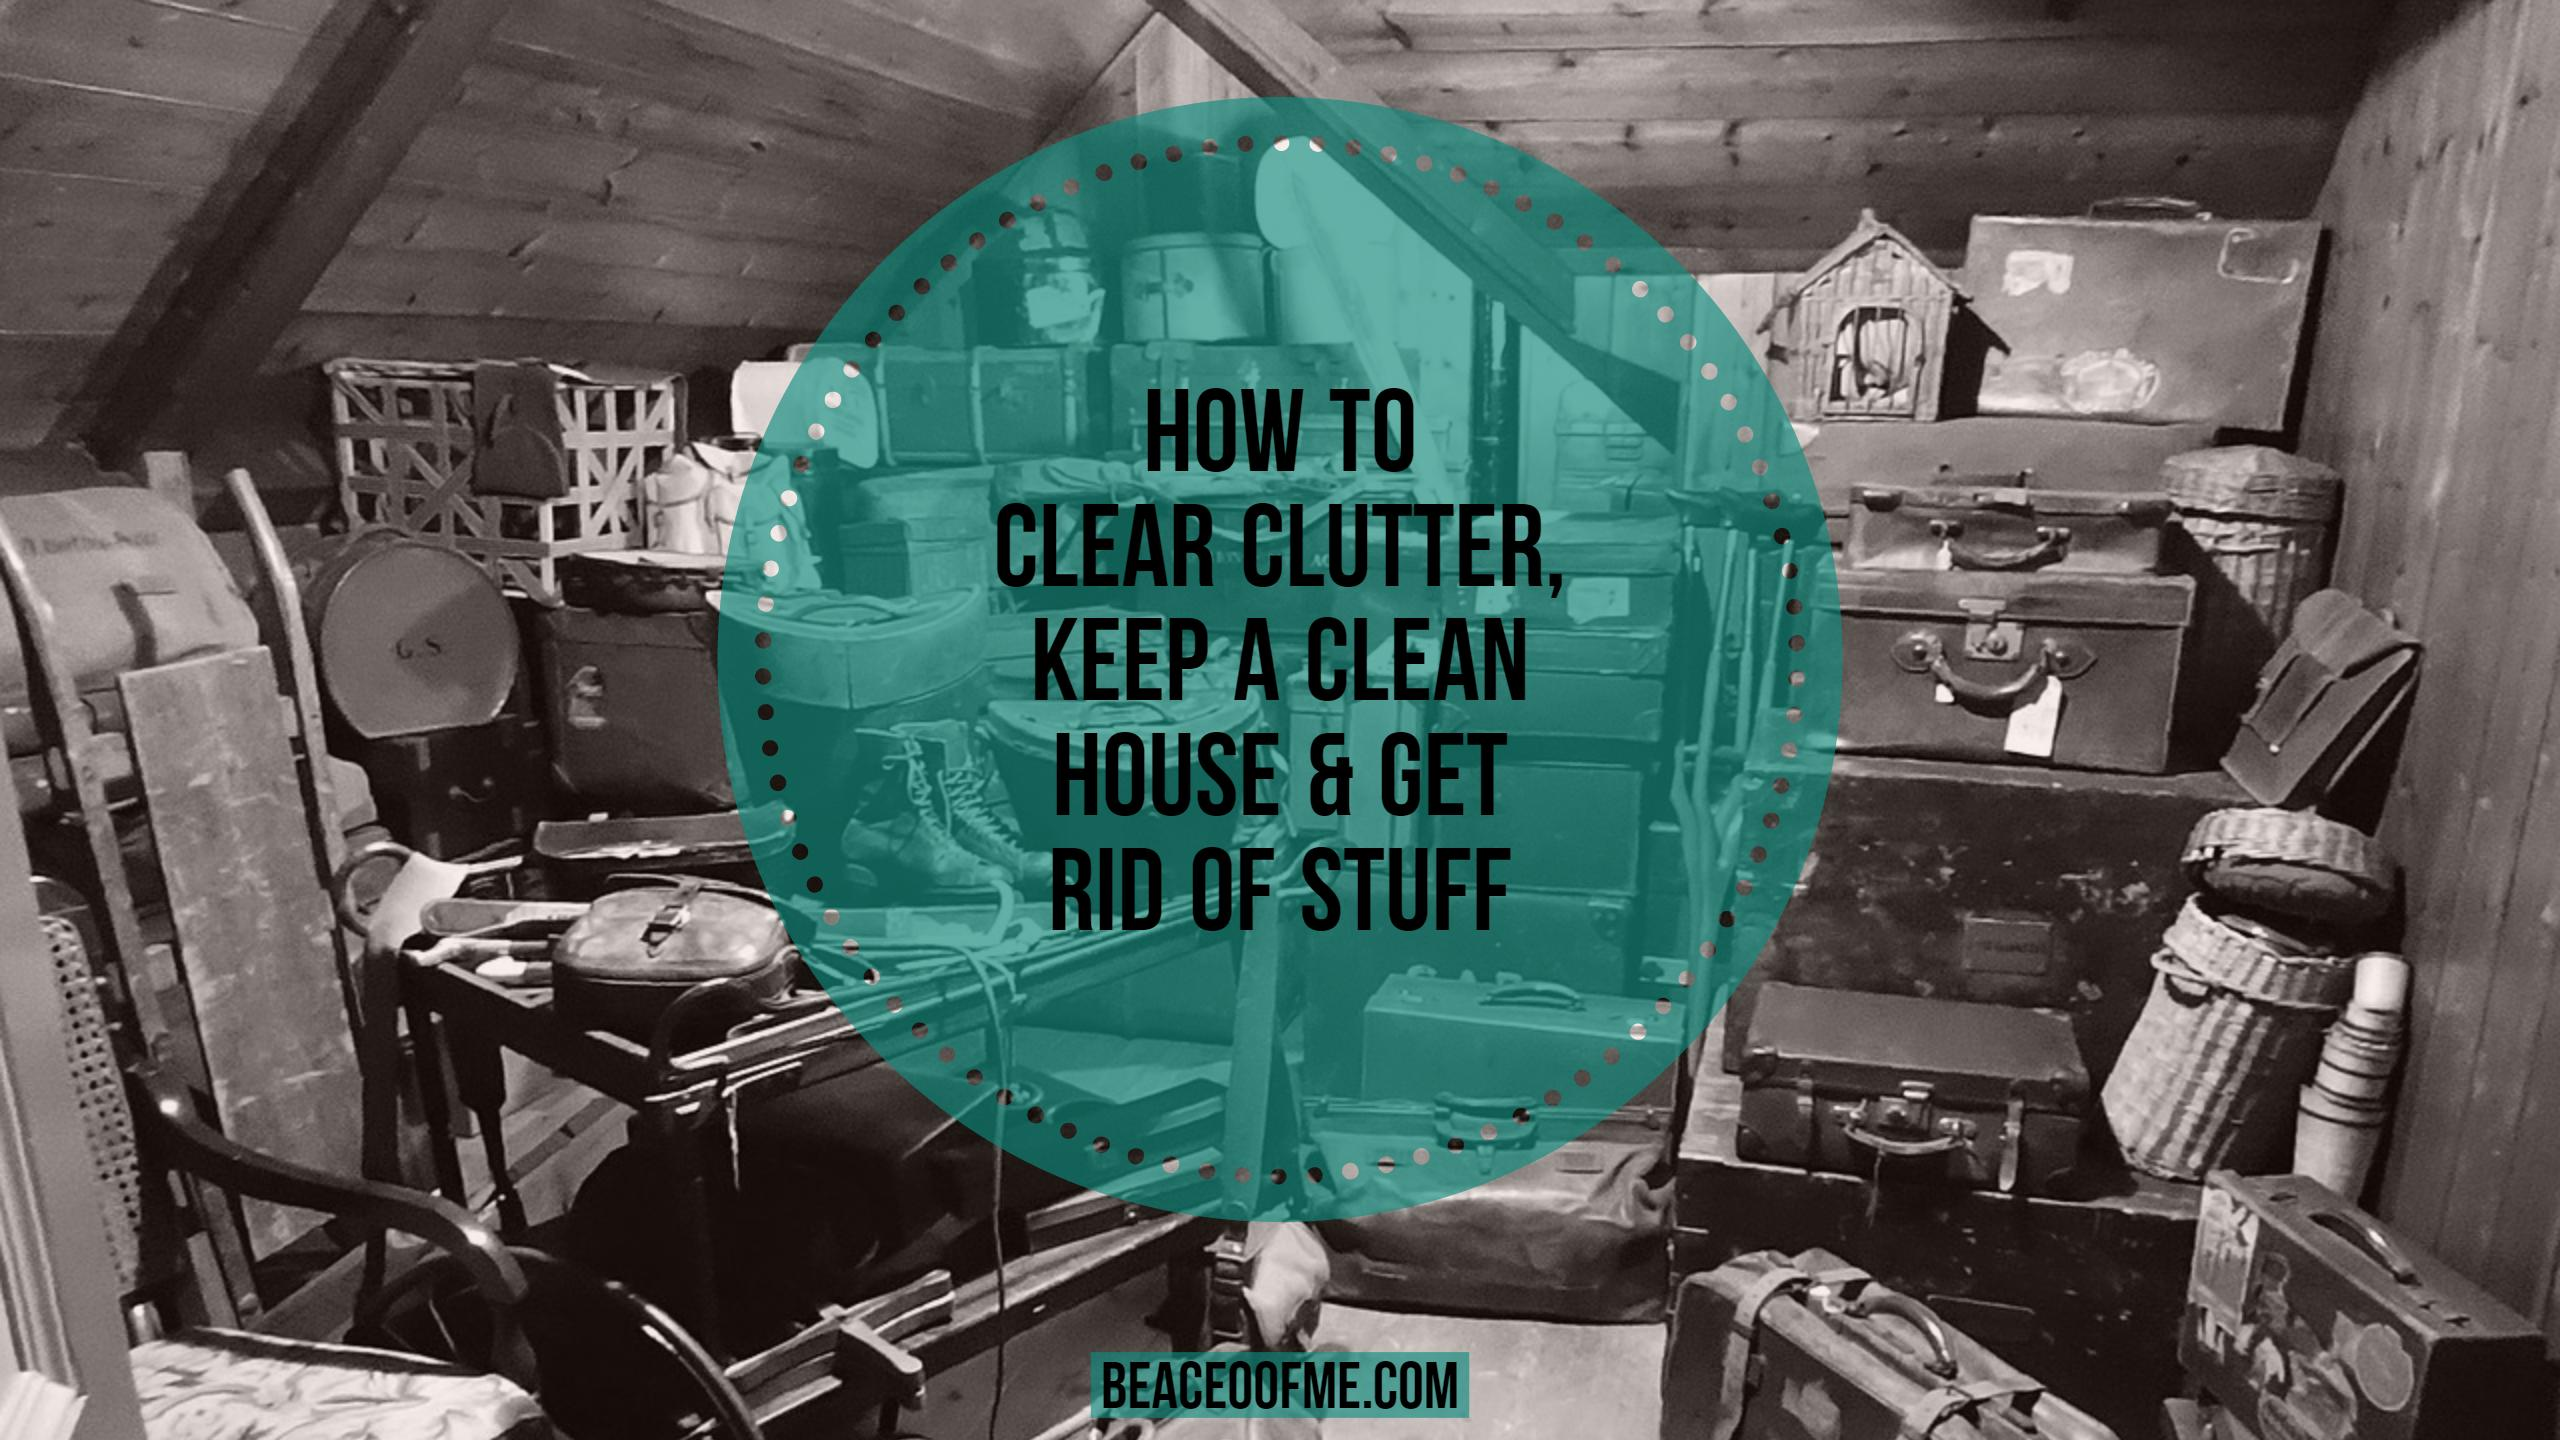 How to clear clutter, keep a clean house and get rid of stuff